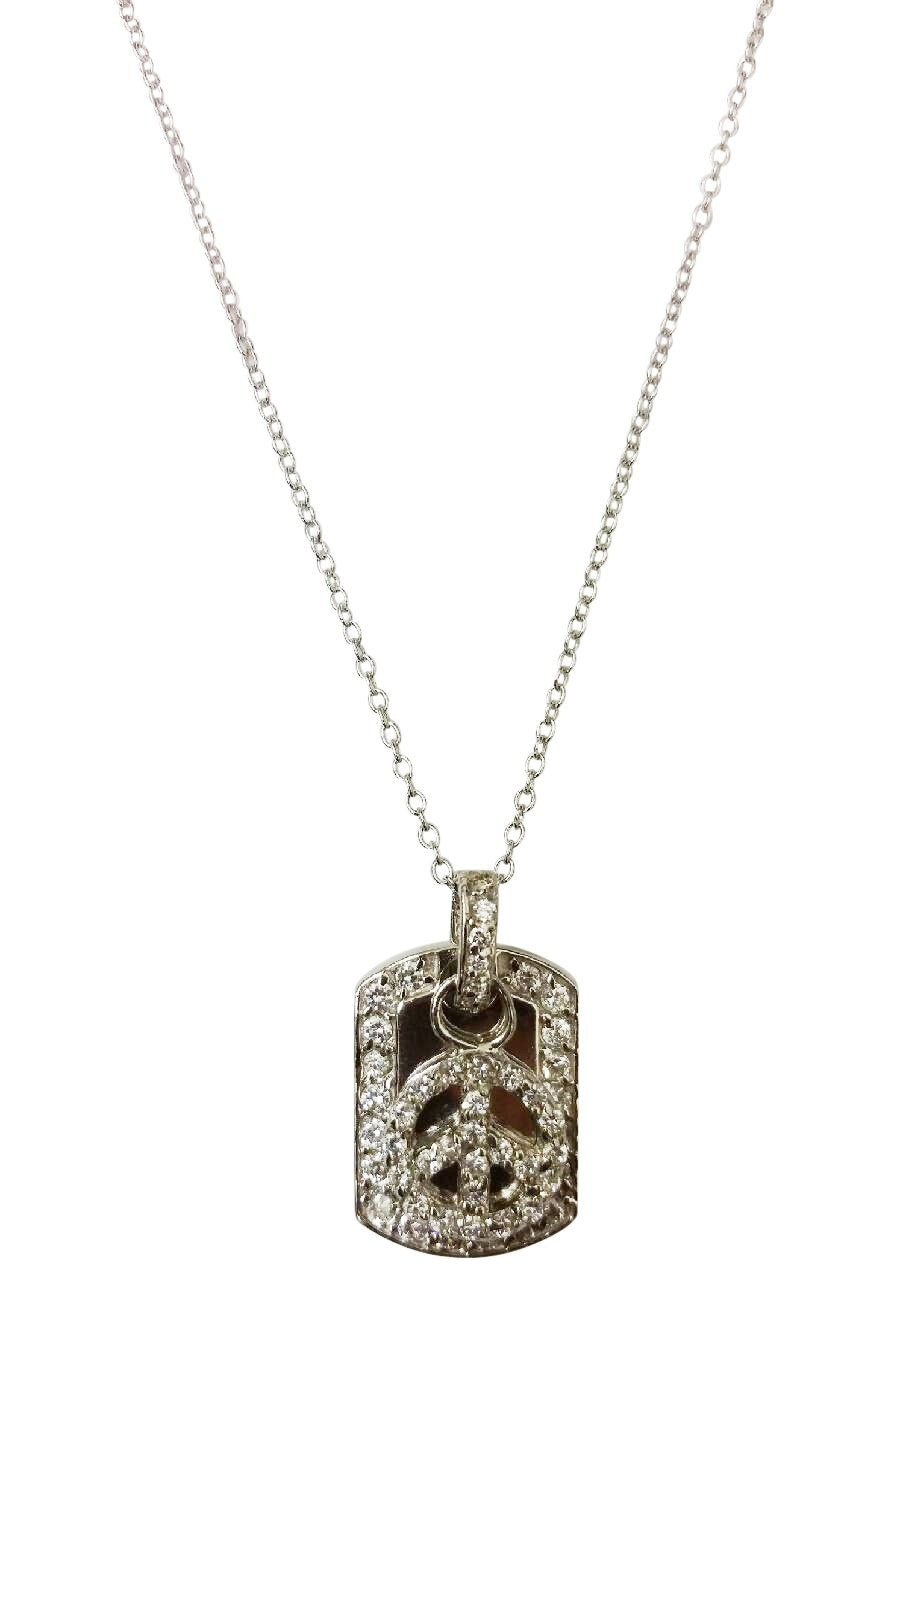 Sterling Silver dog tag with bordered CZ pave featuring an electroplated pave peace sign charm